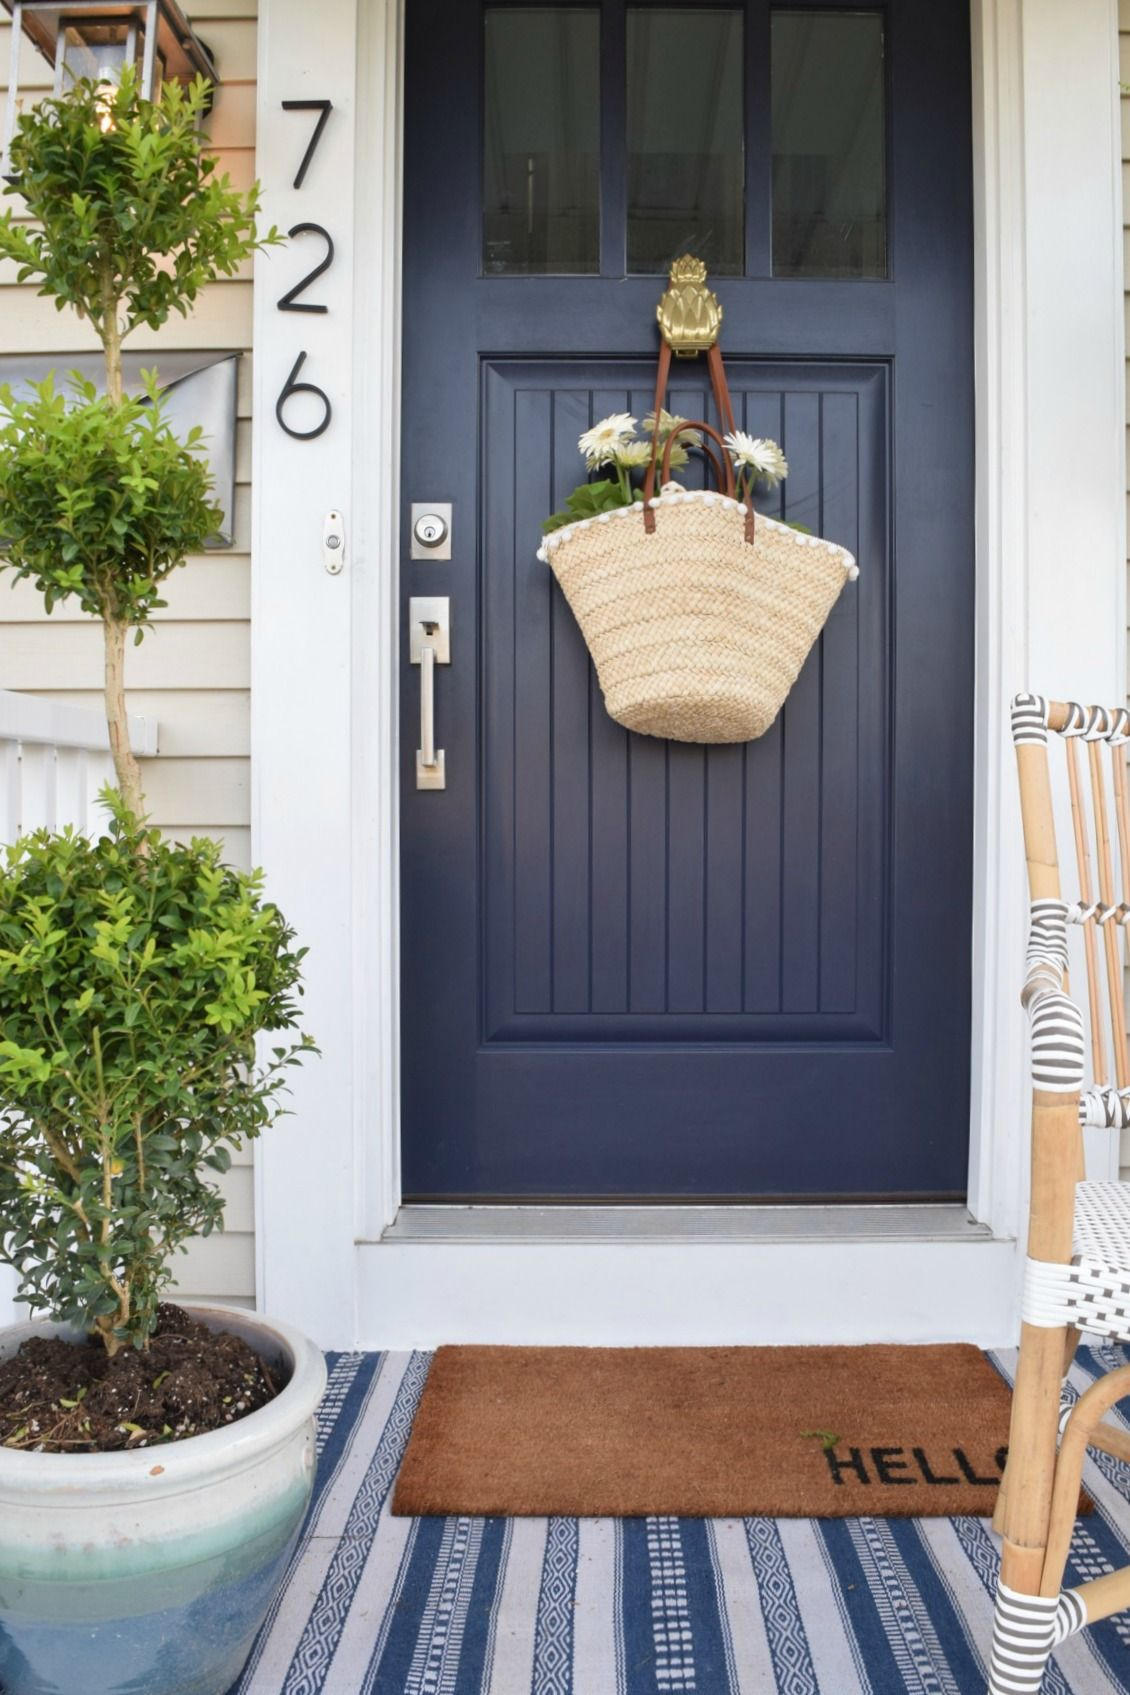 Front porch ideas for summer and designing the outdoors also decorating my home rh pinterest